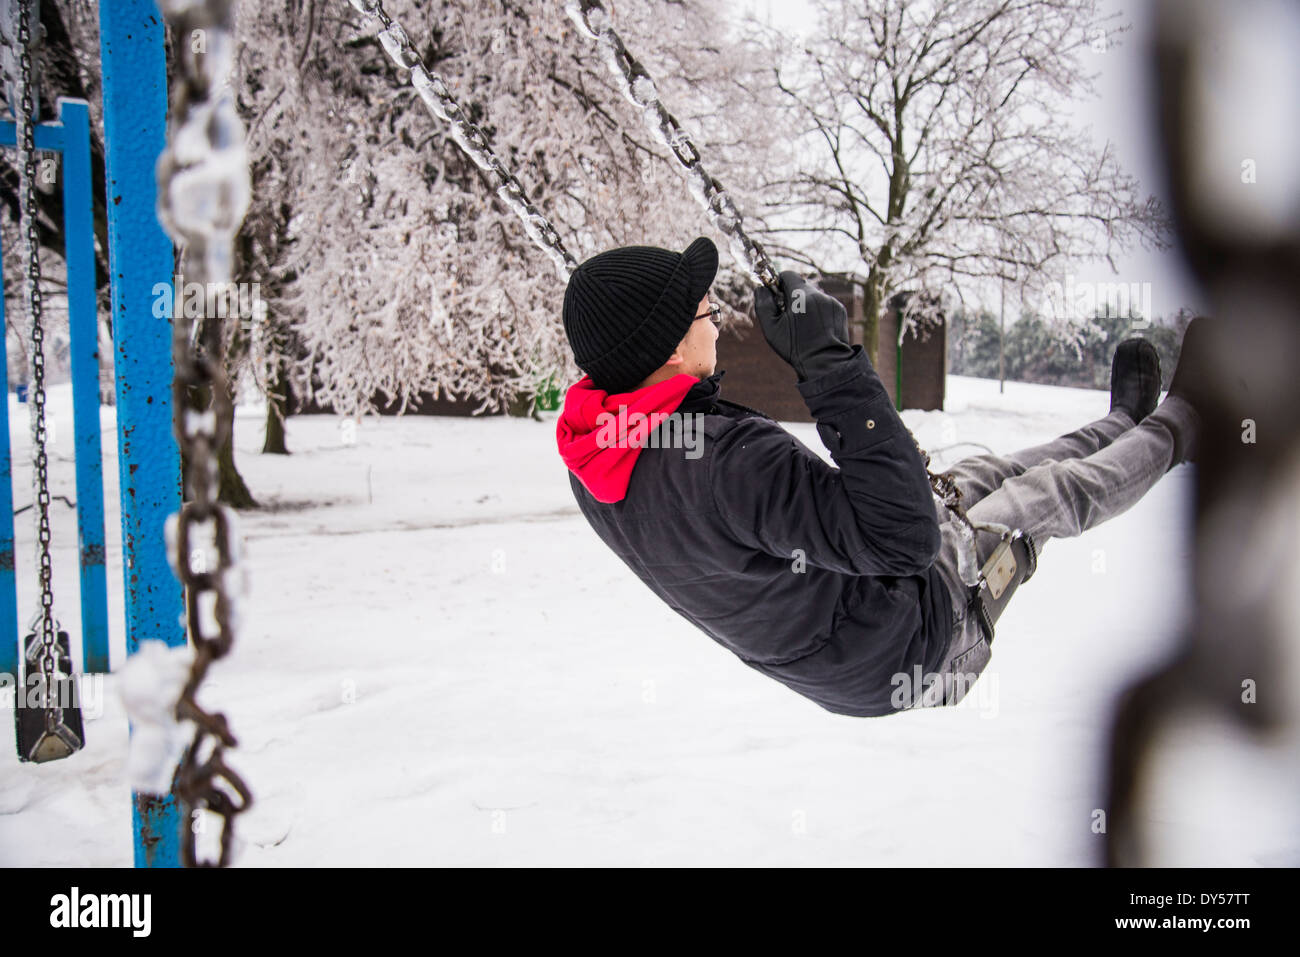 Young man playing on park swing at -30 degrees celcius - Stock Image